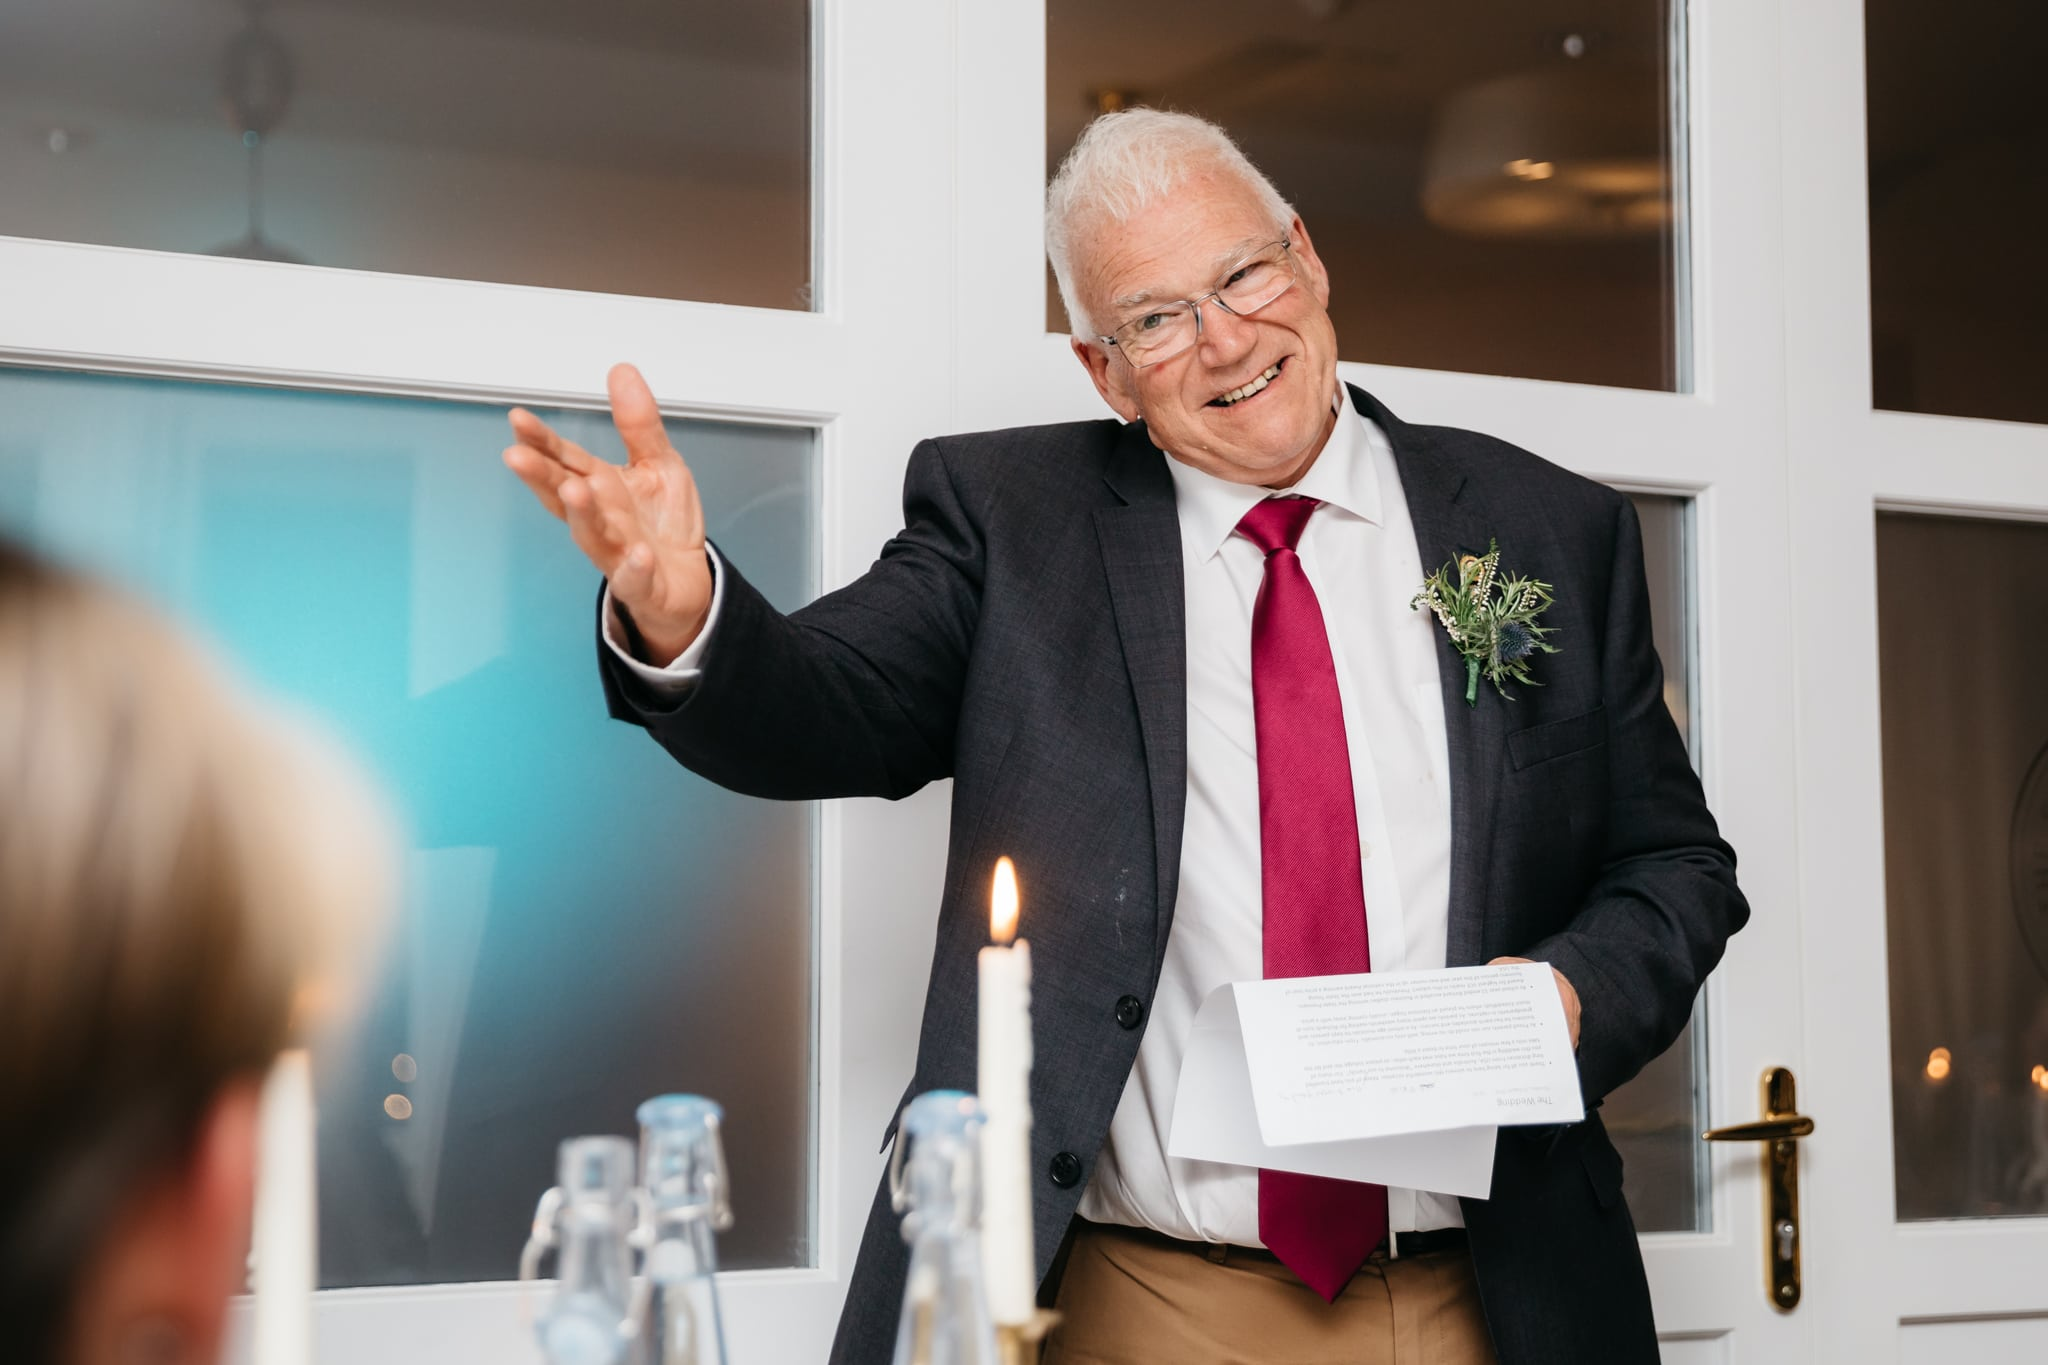 Father of groom giving speech